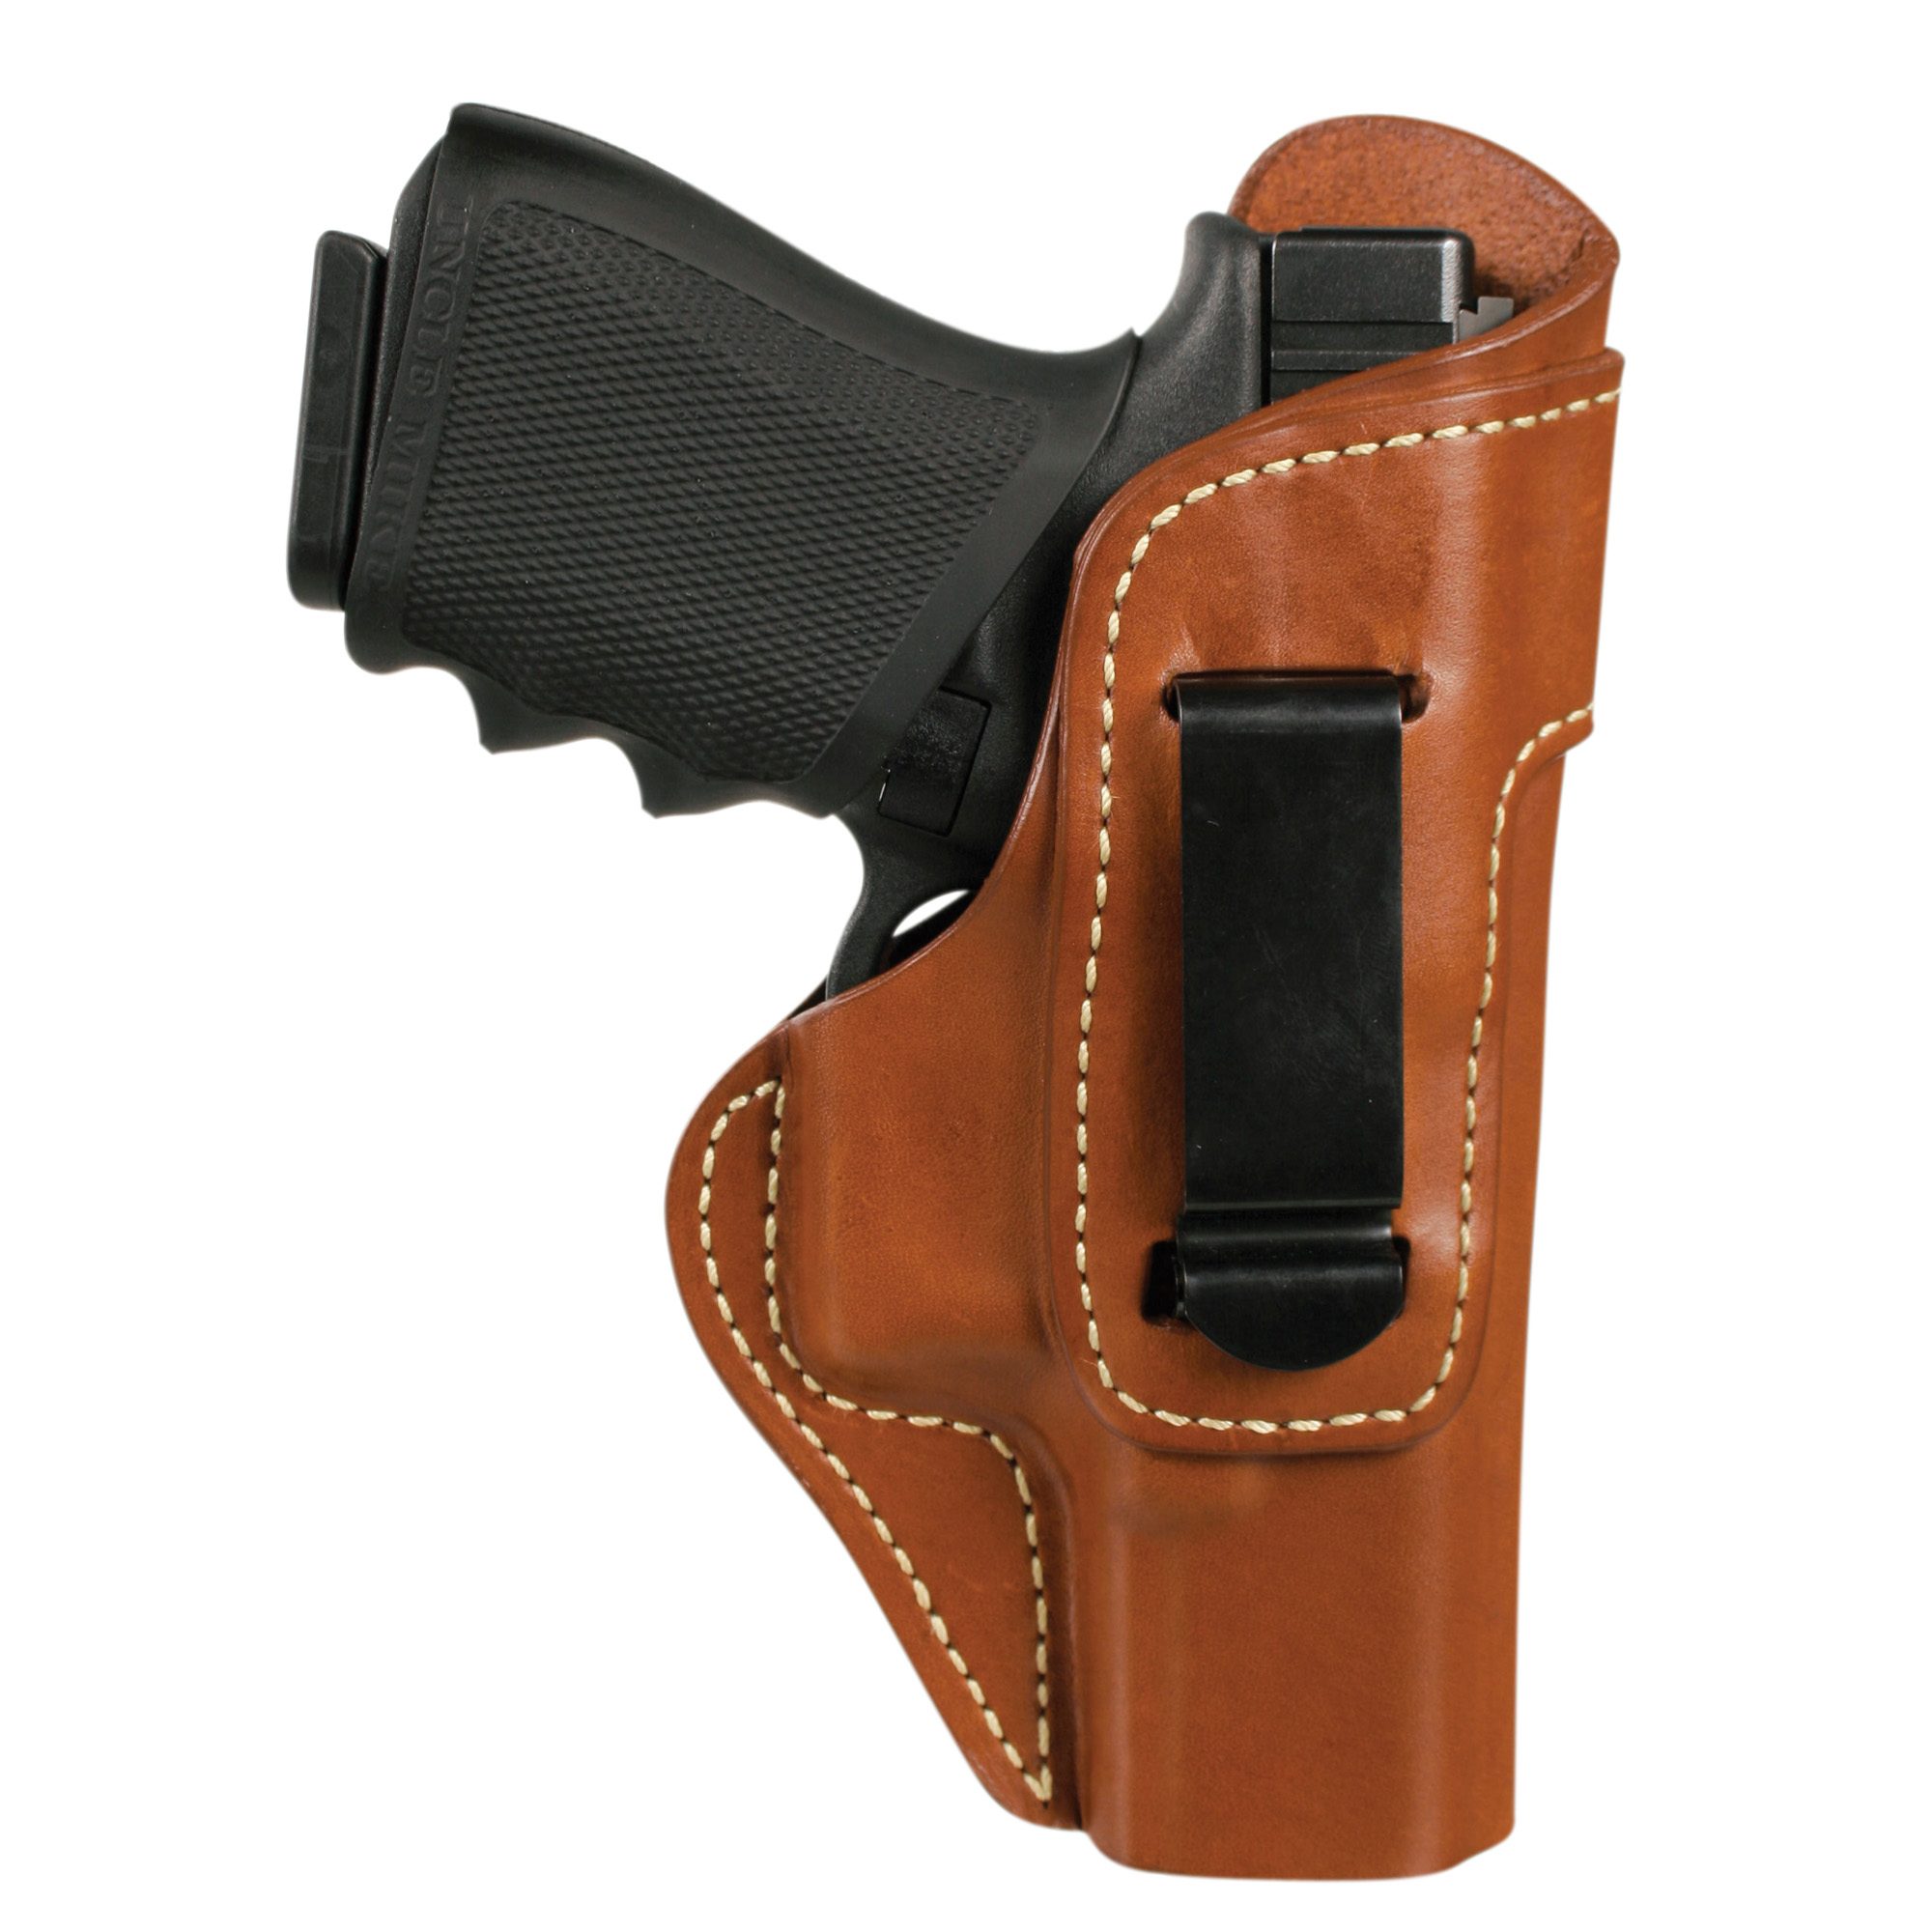 Blackhawk Leather Inside-The-Pants Holster with Clip